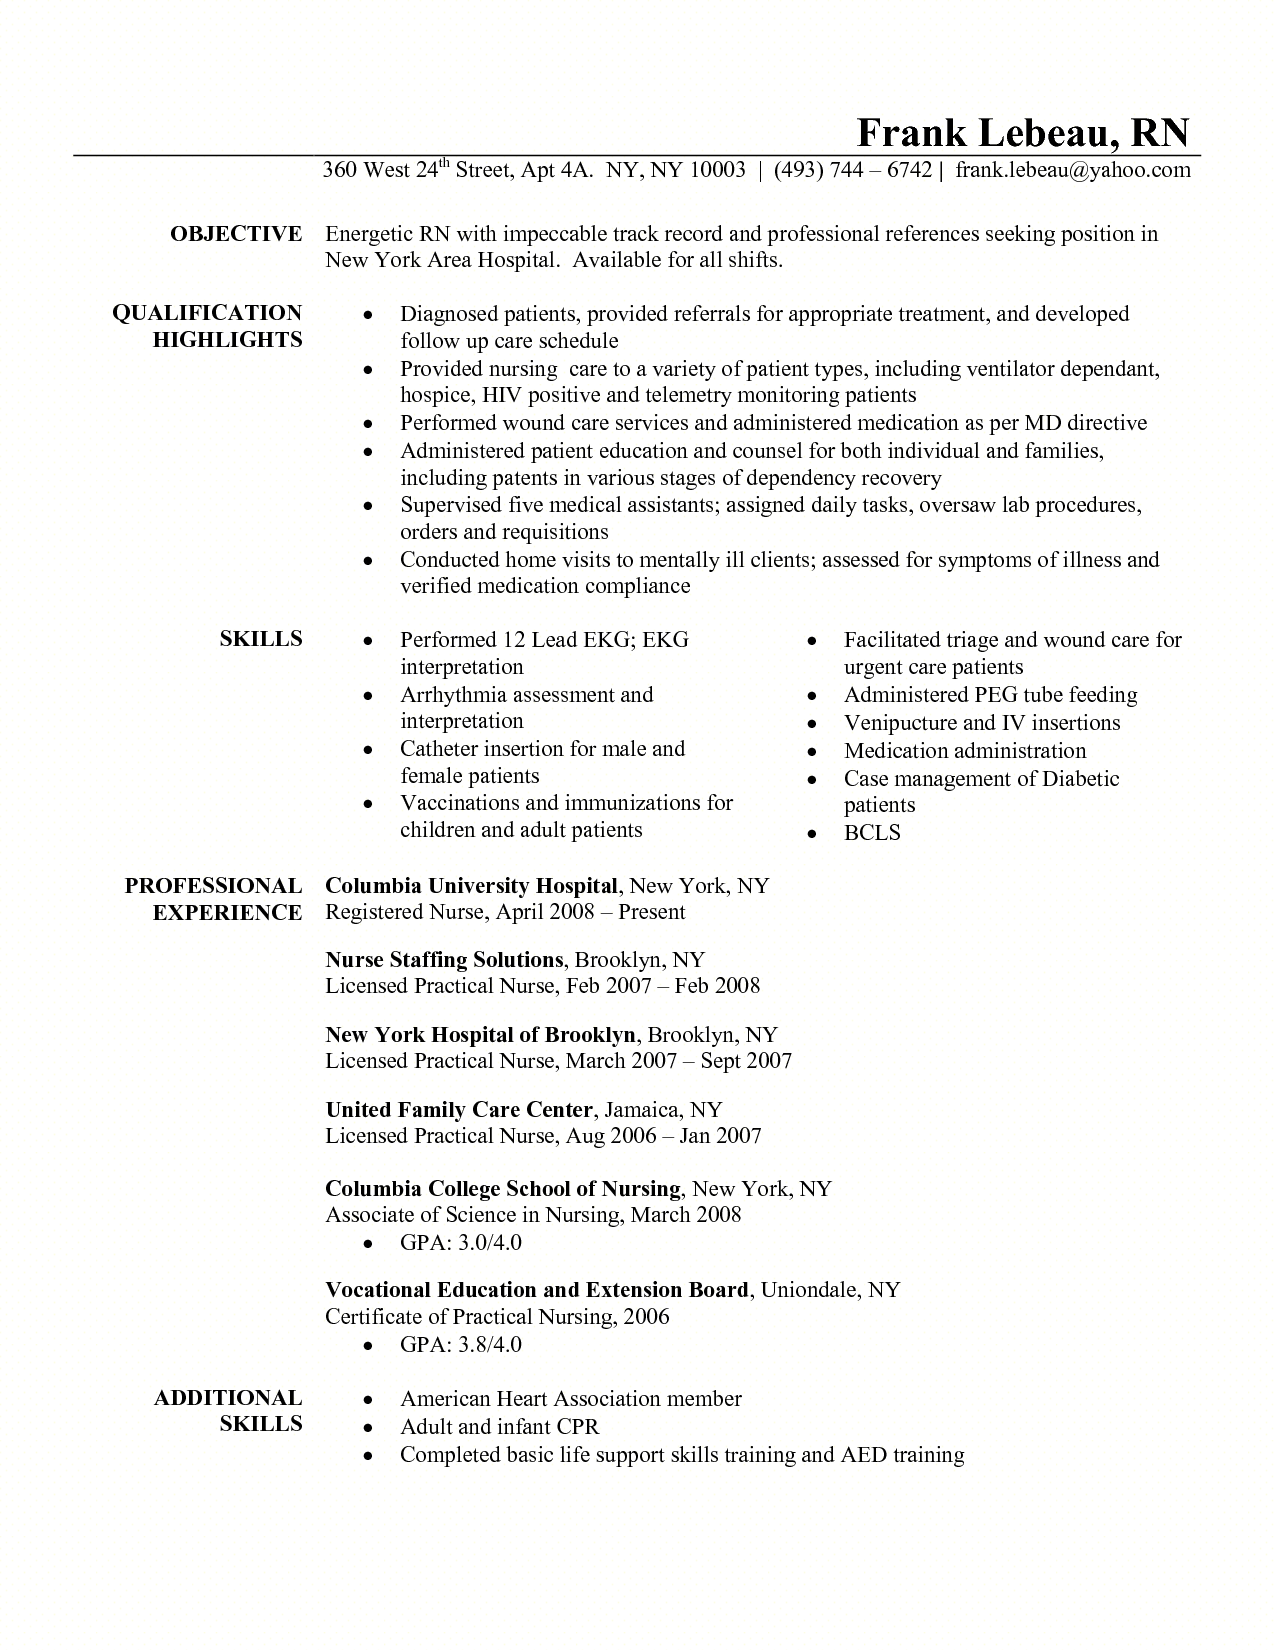 best resume templates examples there are the parts of the resume for triage nurse resumecareer info resume